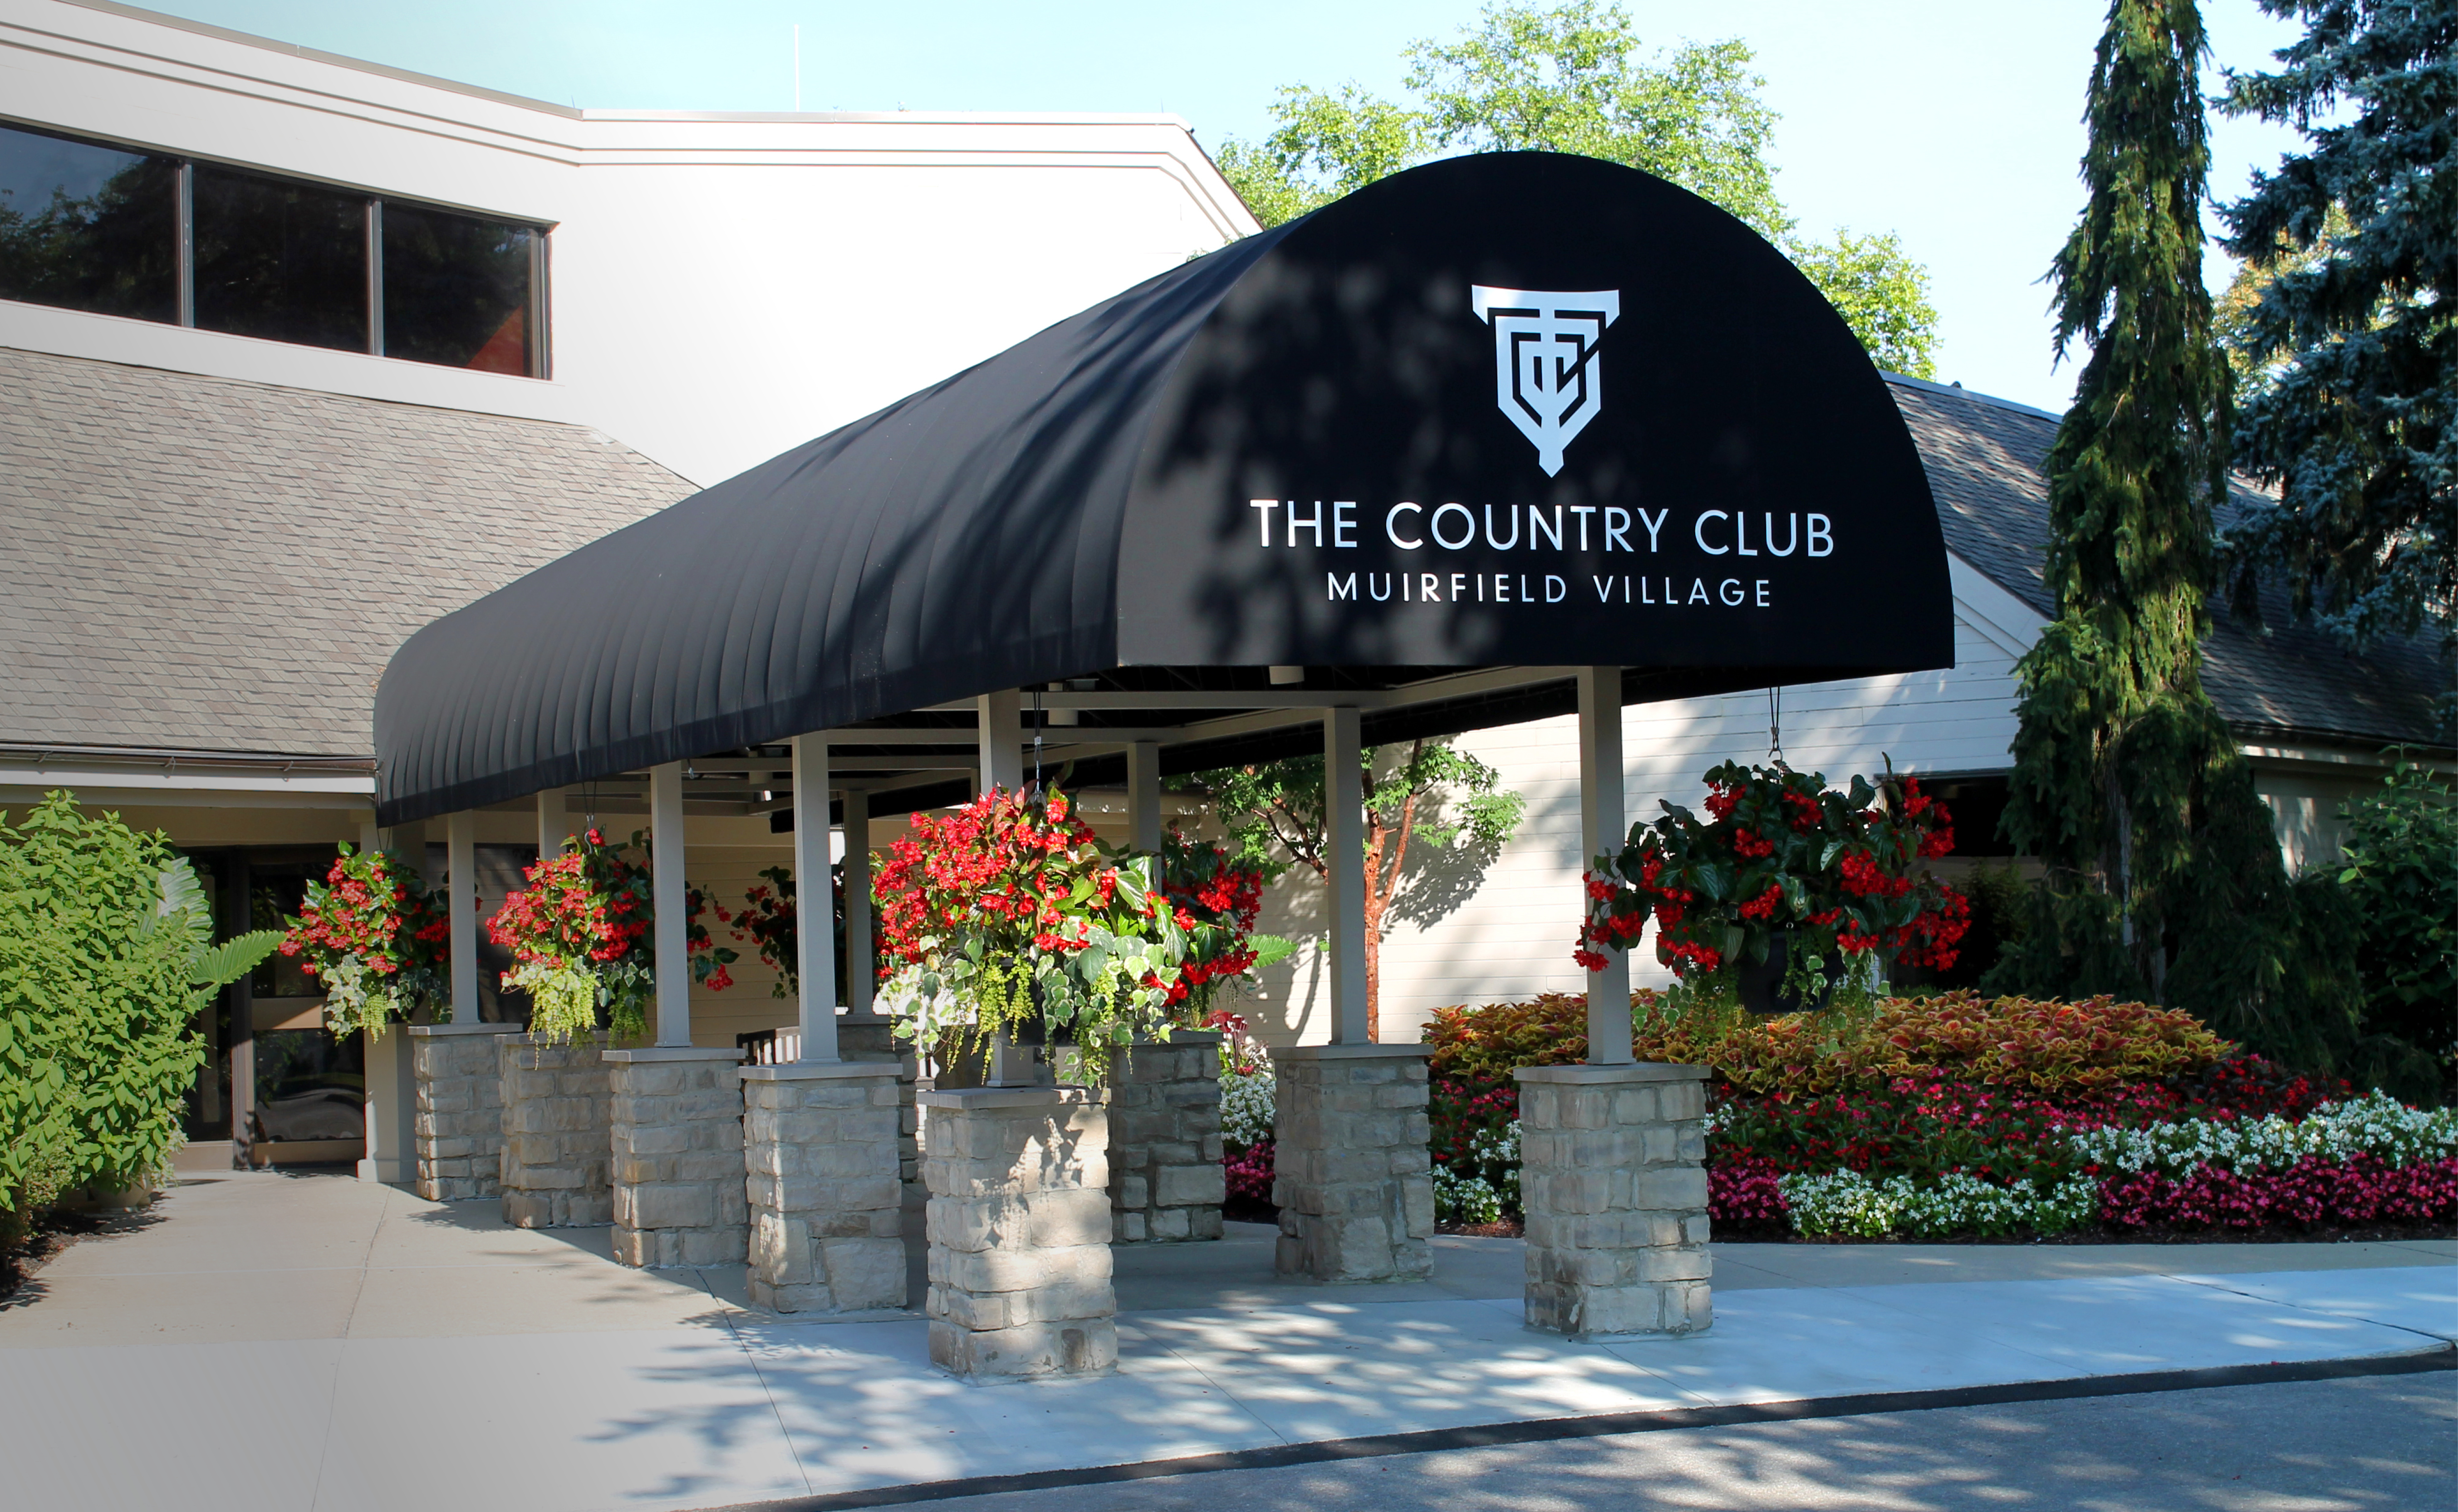 The Country Club at Muirfield Village Entrance Sign